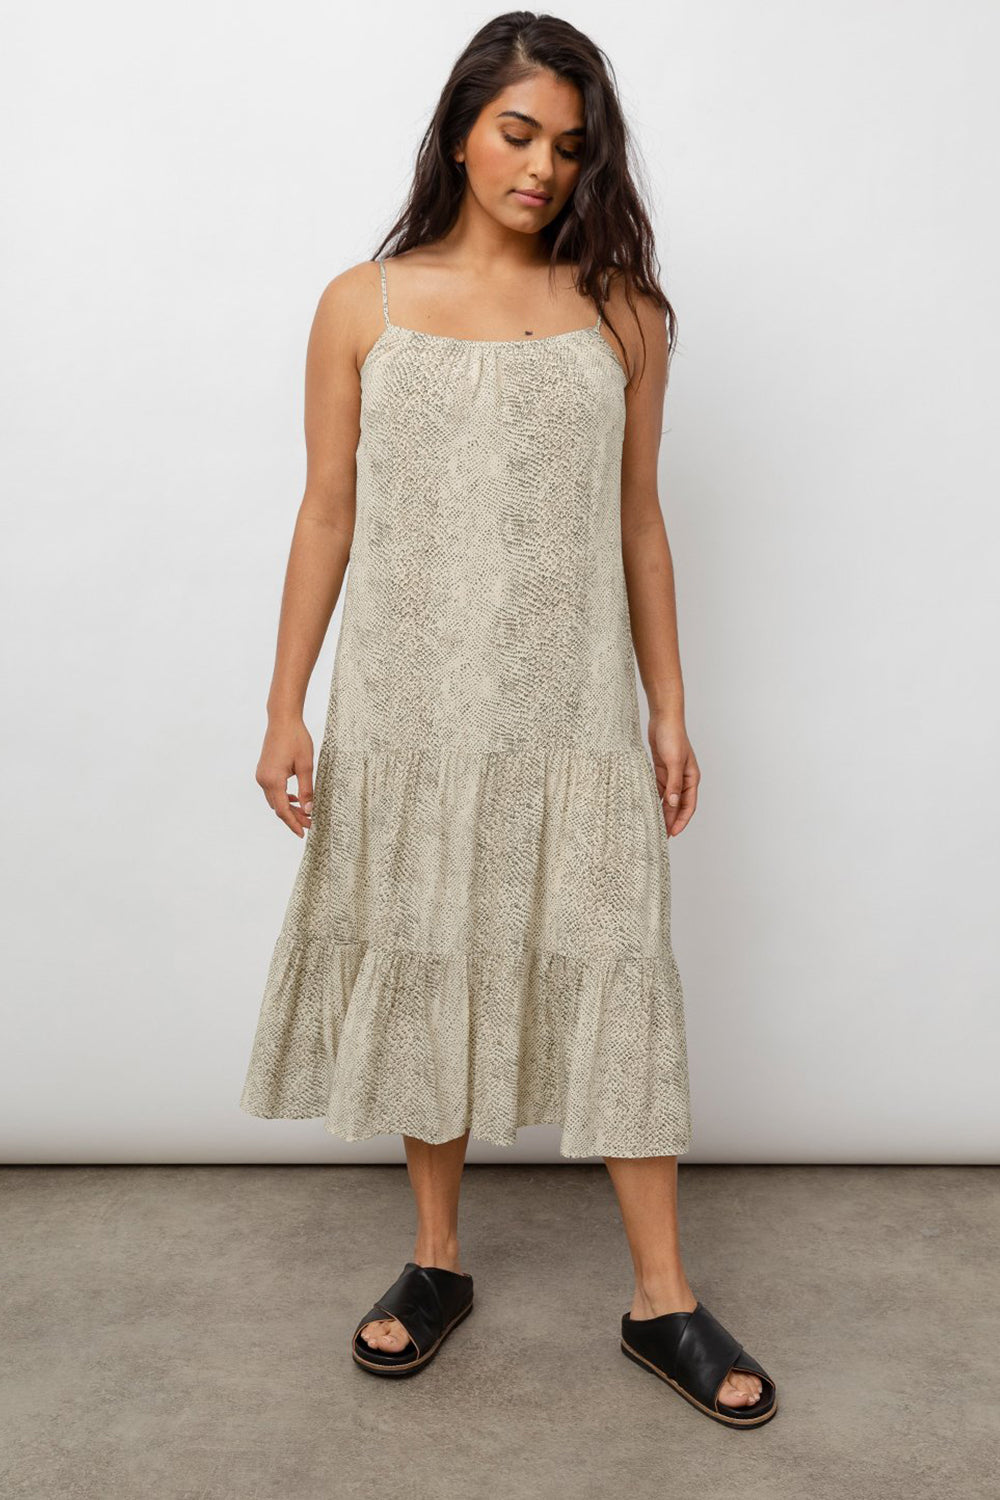 RAILS - ADORA DRESS CREAM SNAKESKIN